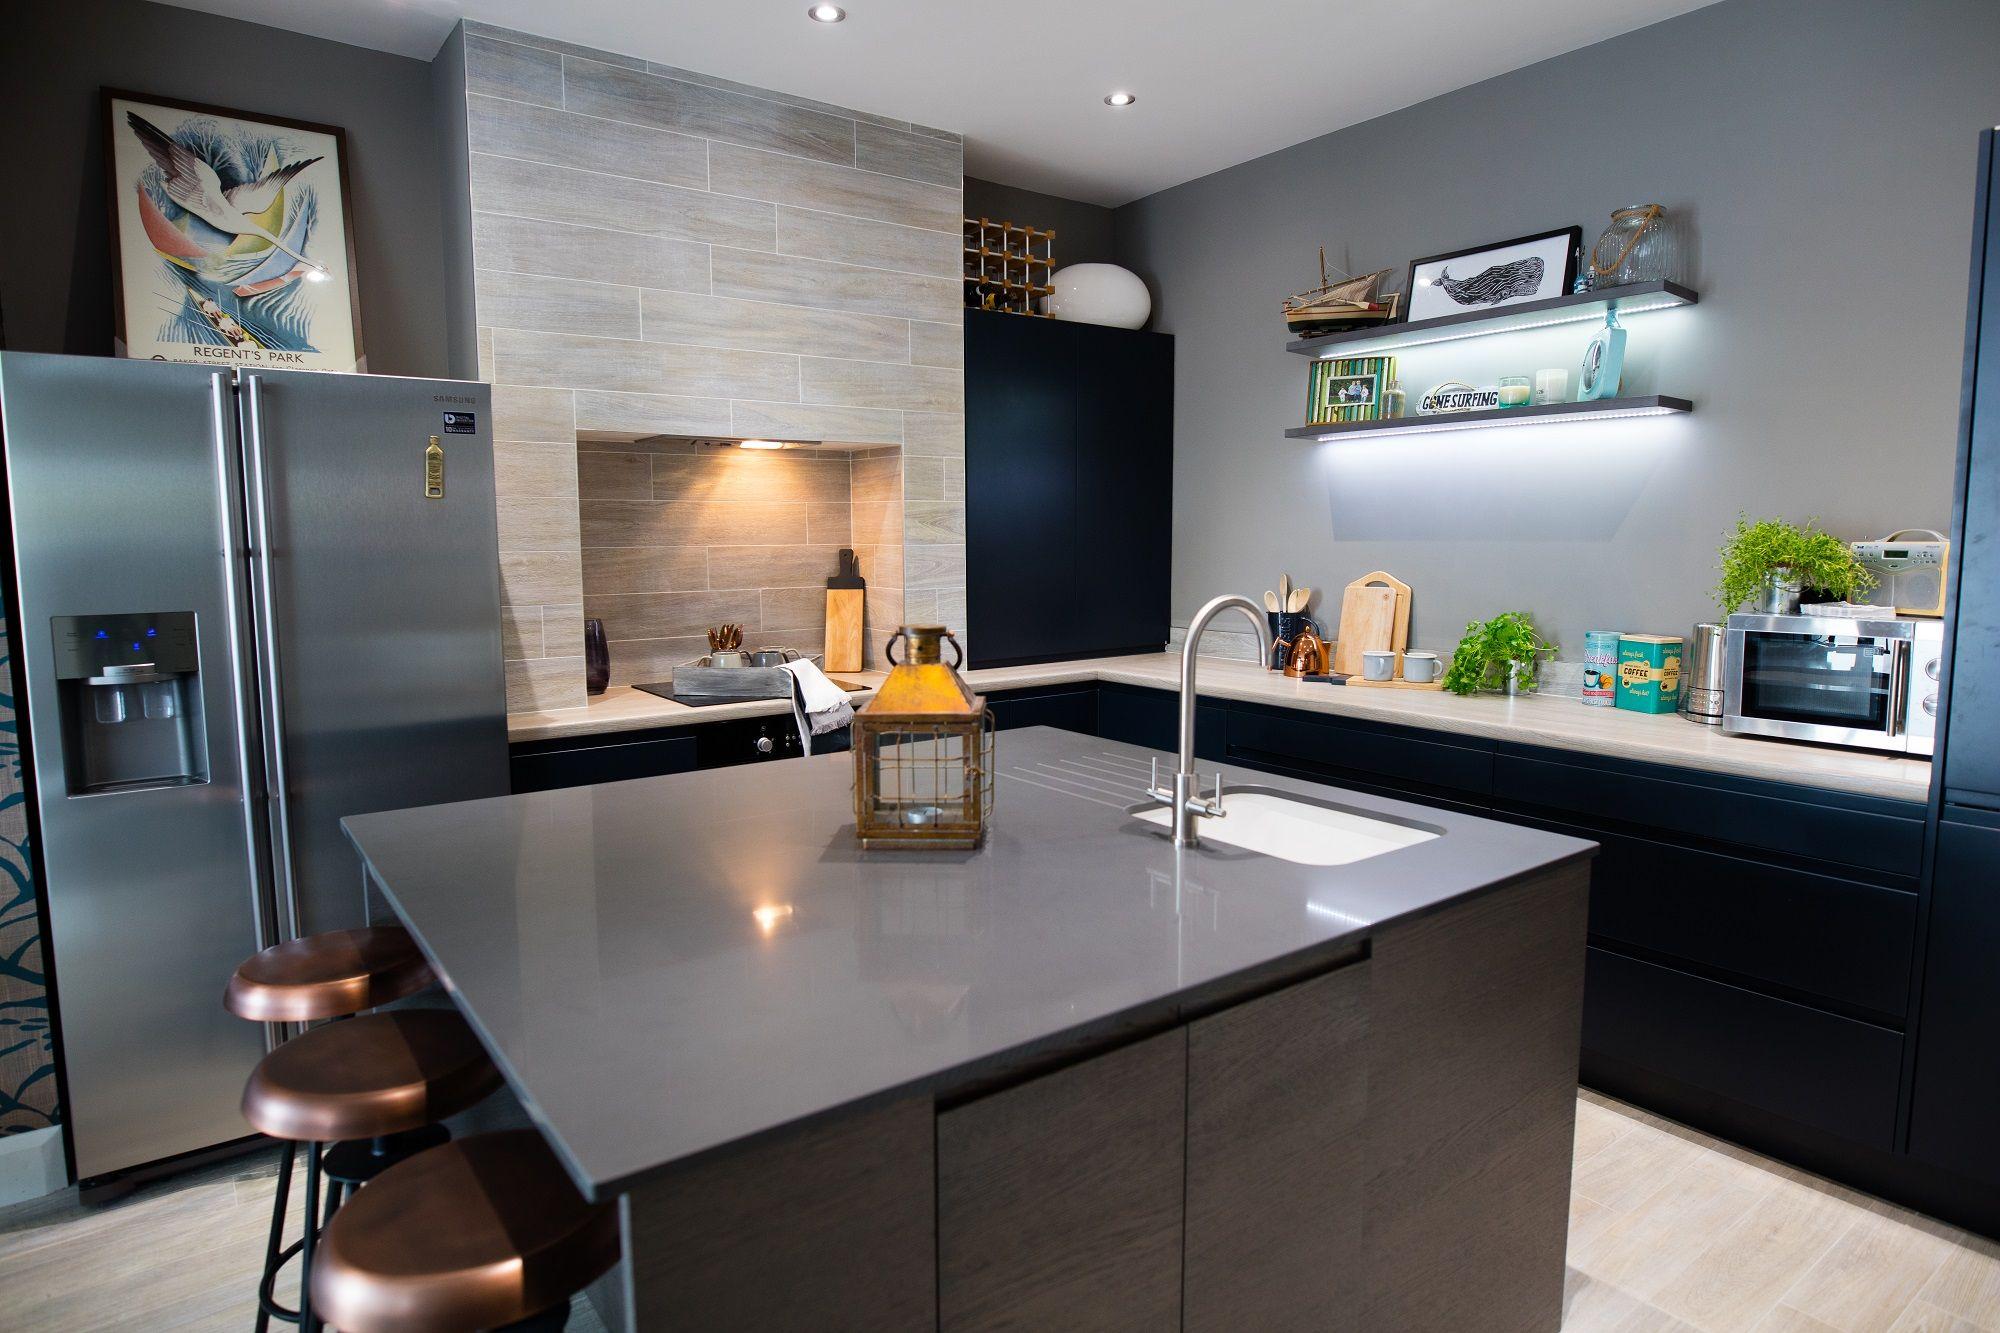 77 Beautiful Kitchen Design Ideas For The Heart Of Your Home